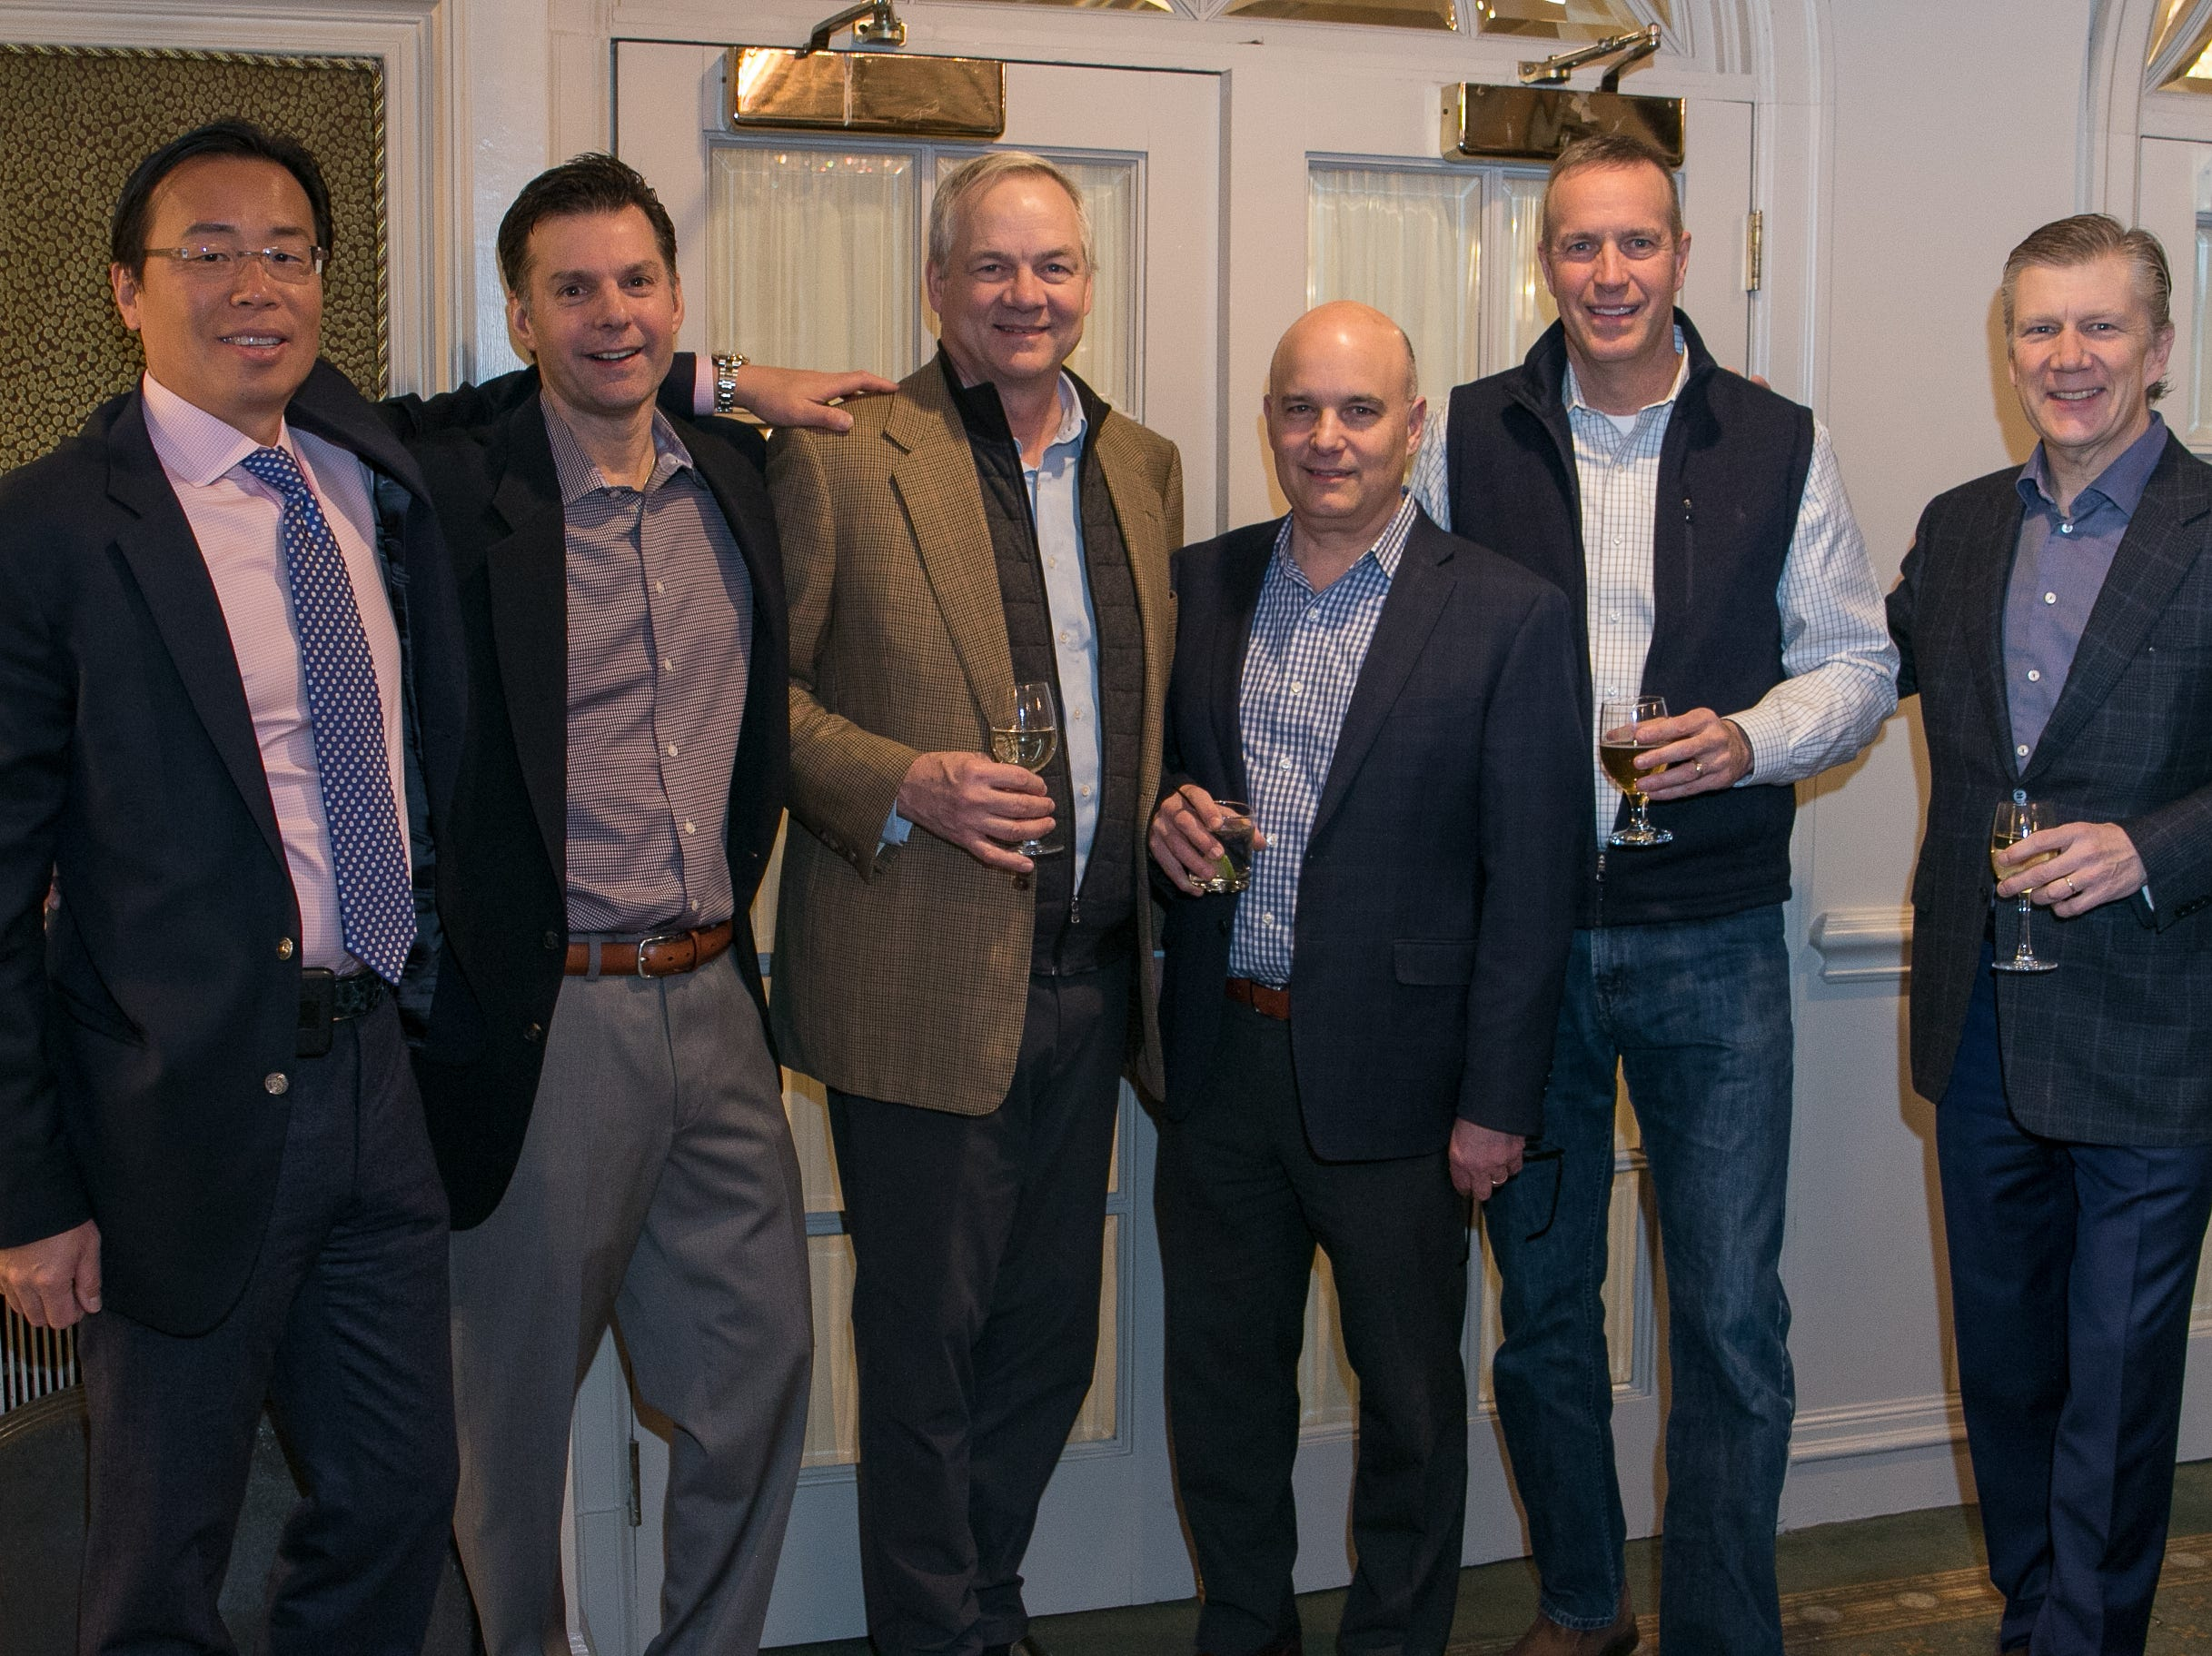 Dr. Michael Ro, Jim Mazzo, Paul Knight, David Parsekian, Jim Schneider, Scott Olsen. Rebuilding Together North Jersey held its third annual Beefsteak Dinner with former NY Giants Howard Cross, Amani Toomer, and Sam Garnes at the Brownstone in Paterson. 03/07/2019